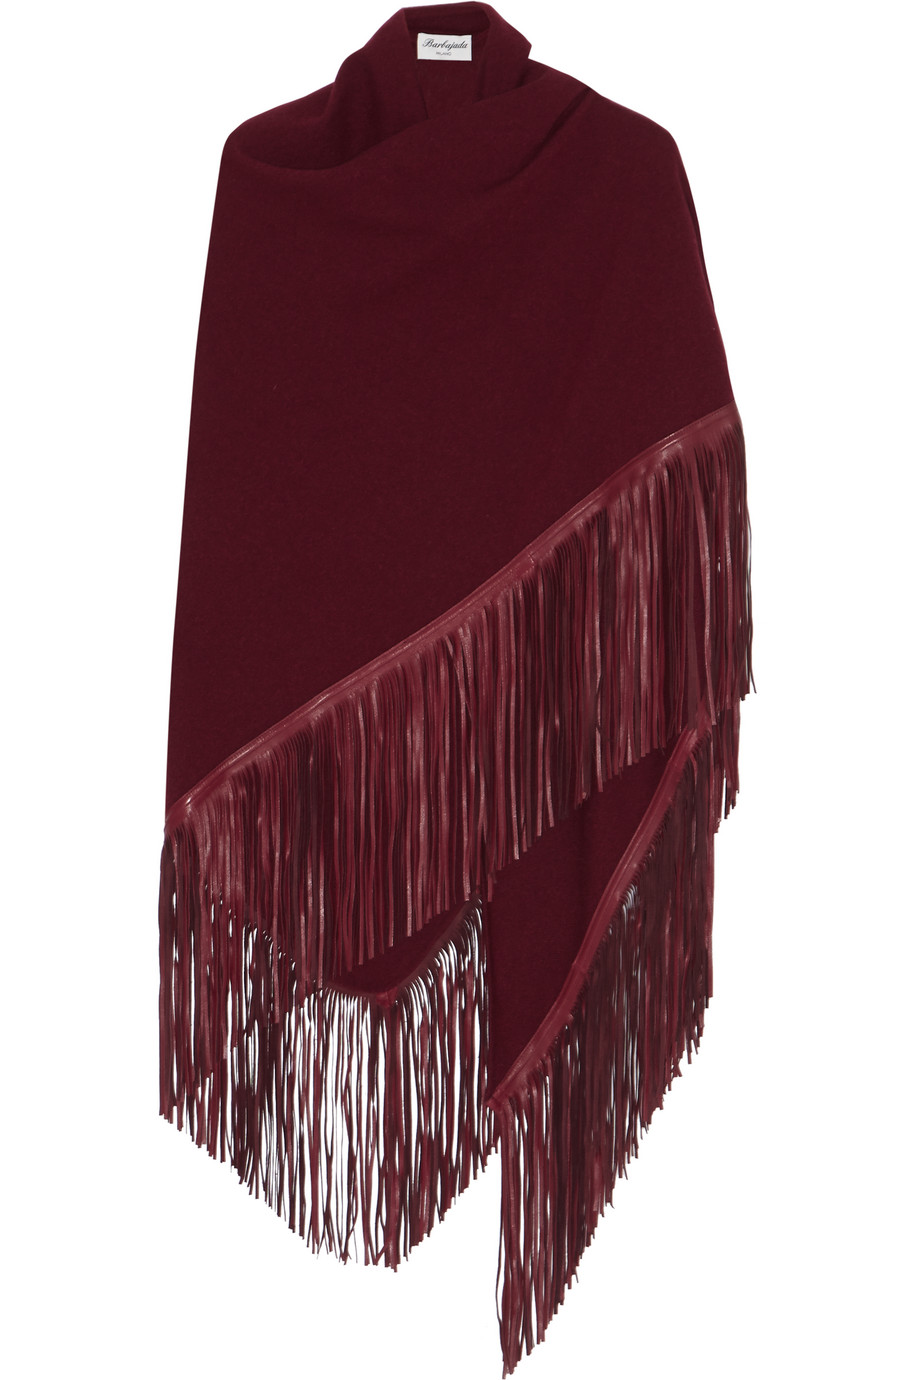 Fringed Leather and Cashmere Wrap, Burgundy, Women's